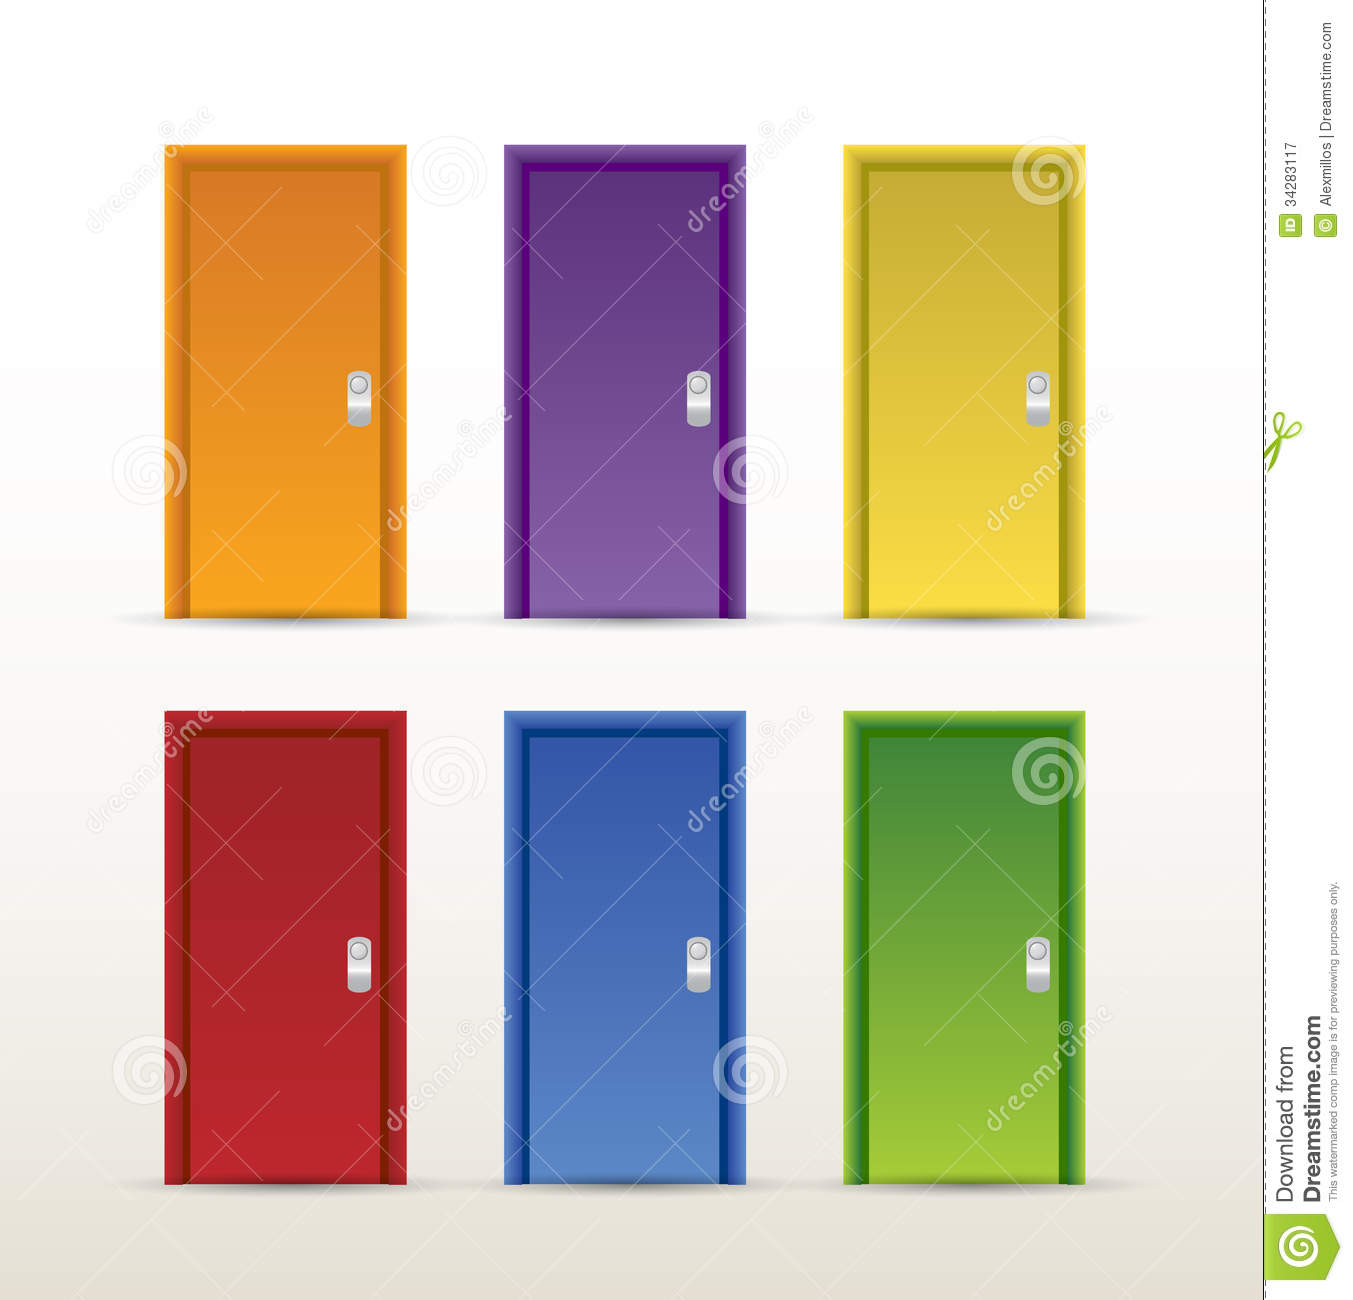 color doors illustration design royalty free stock photography